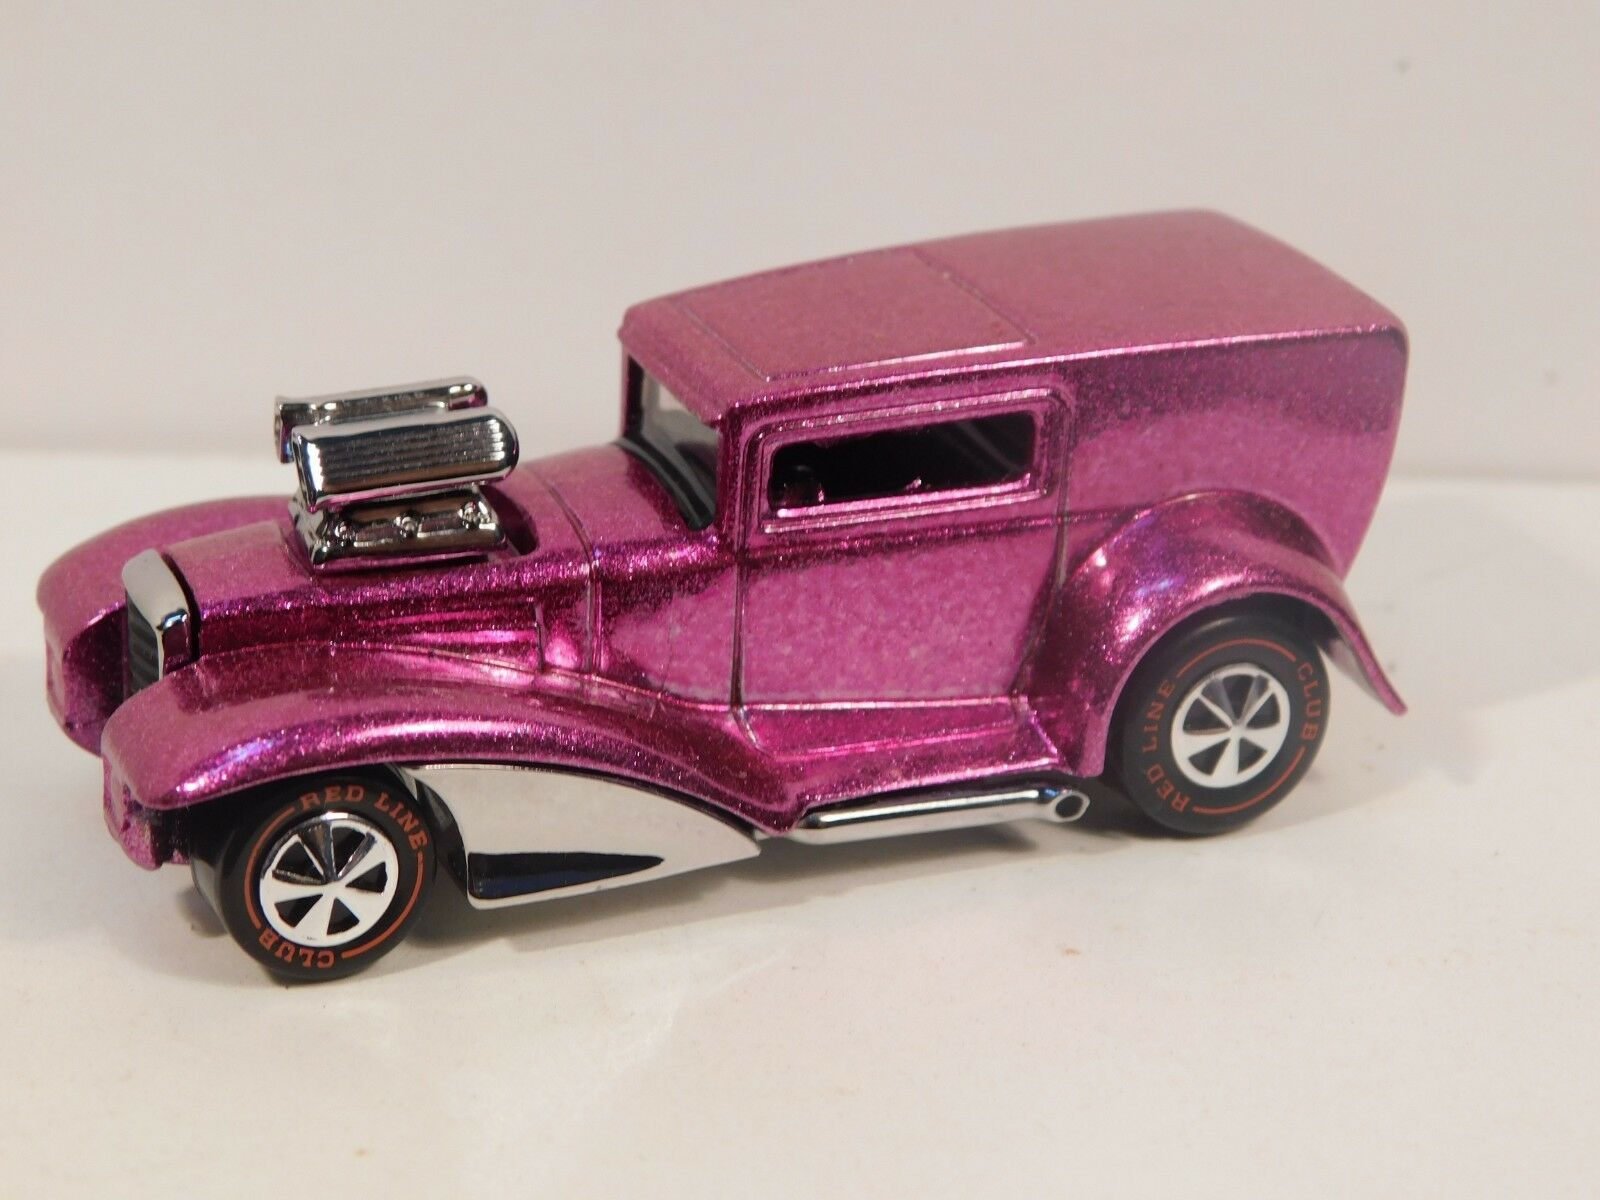 MOB Rod Hot wheels rougeline Premium Resto-Conversion Rose